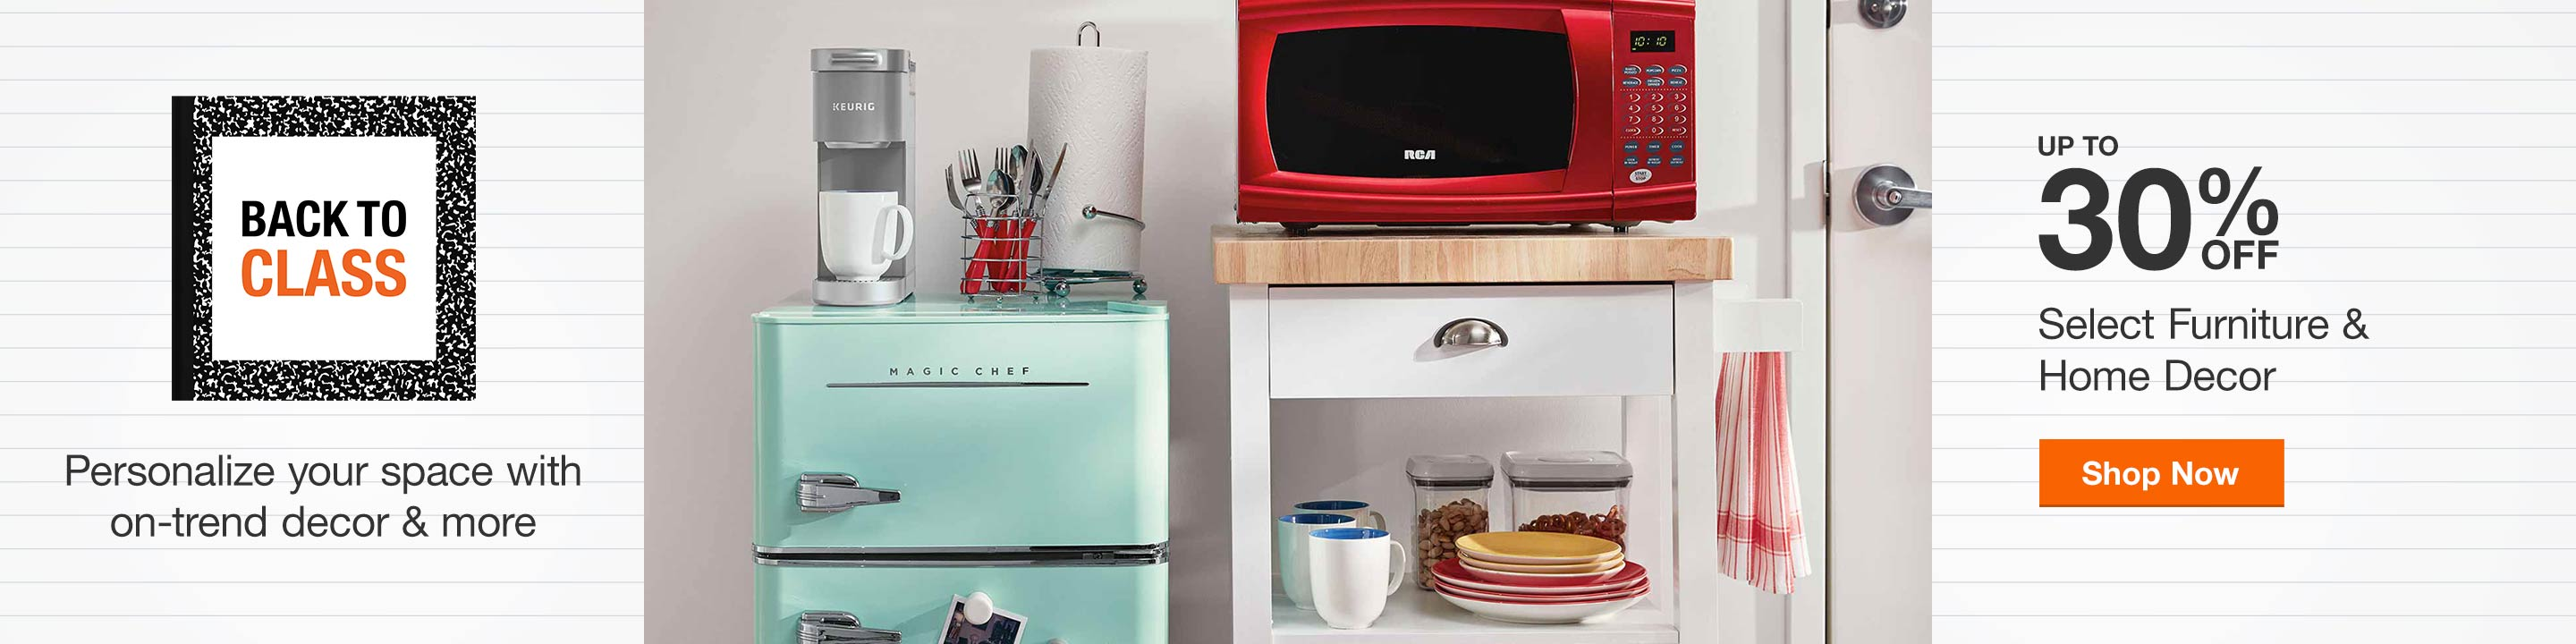 Up to 30% Off Select Furniture & Home Decor